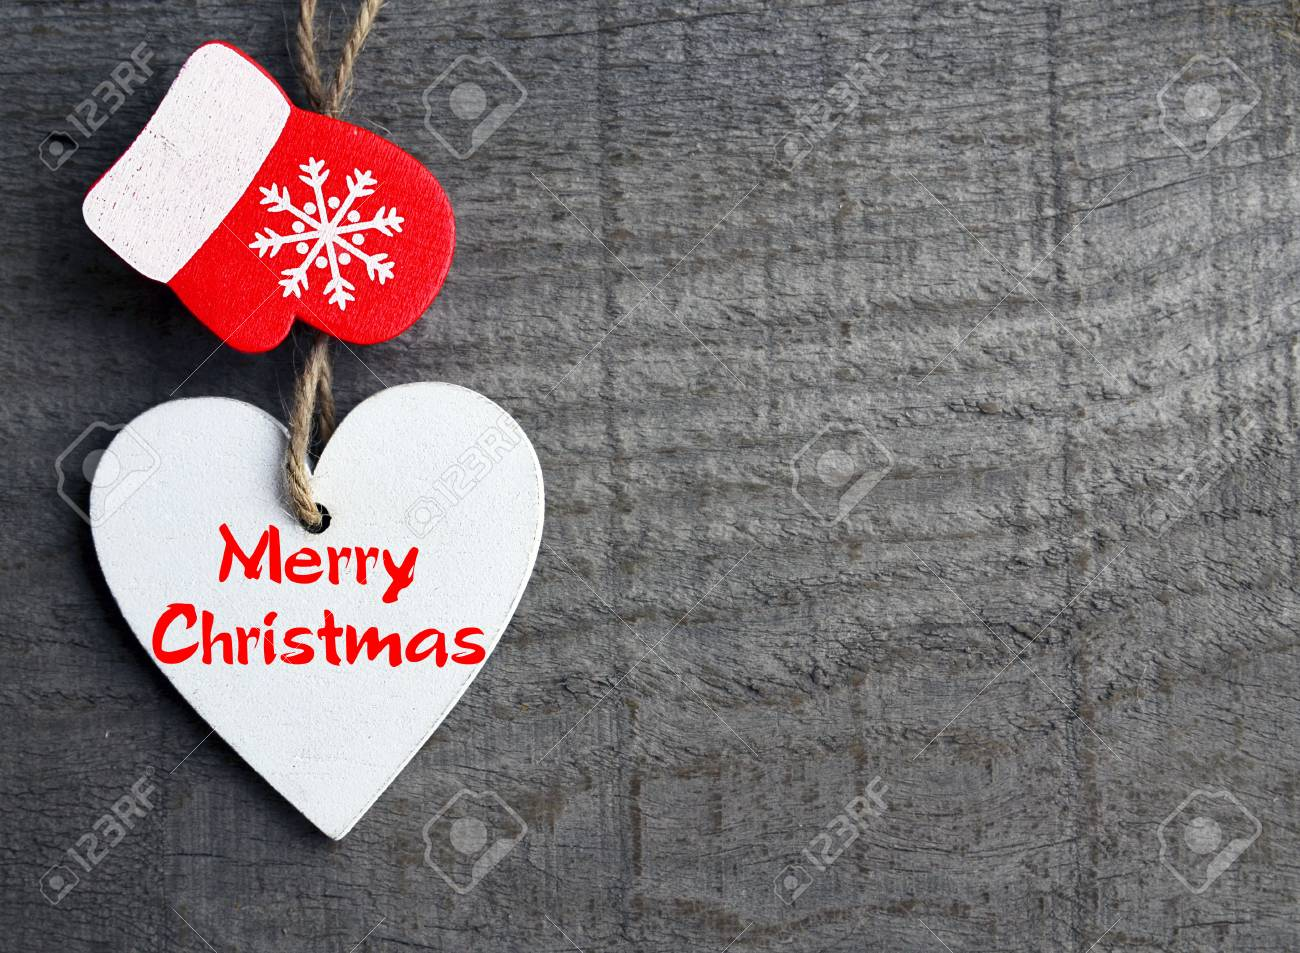 Merry Christmas.Decorative White Wooden Christmas Heart And Red ...